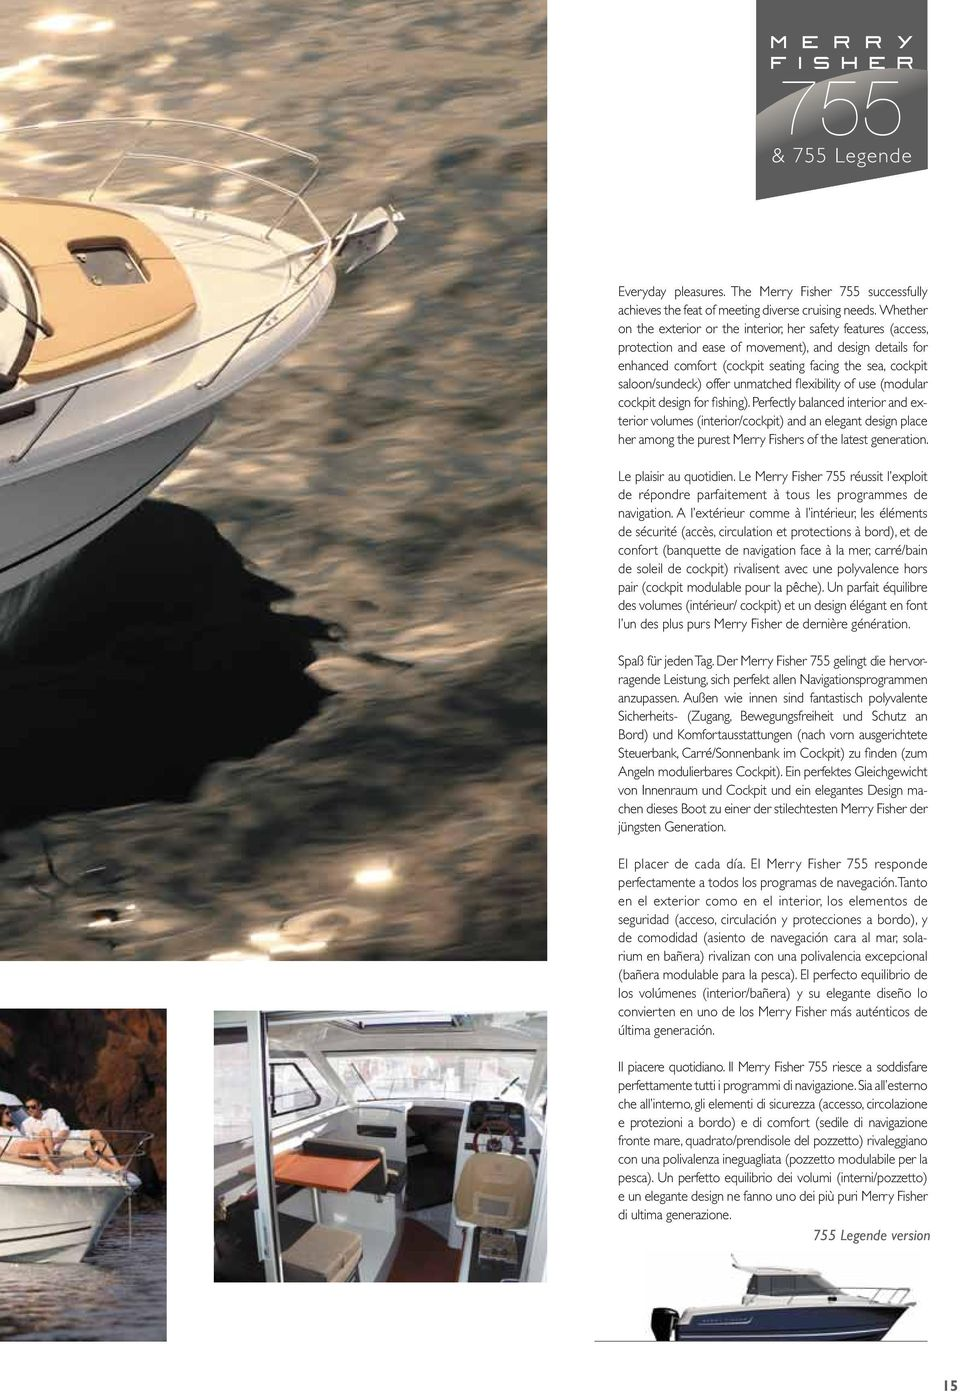 saloon/sundeck) offer unmatched flexibility of use (modular cockpit design for fishing).